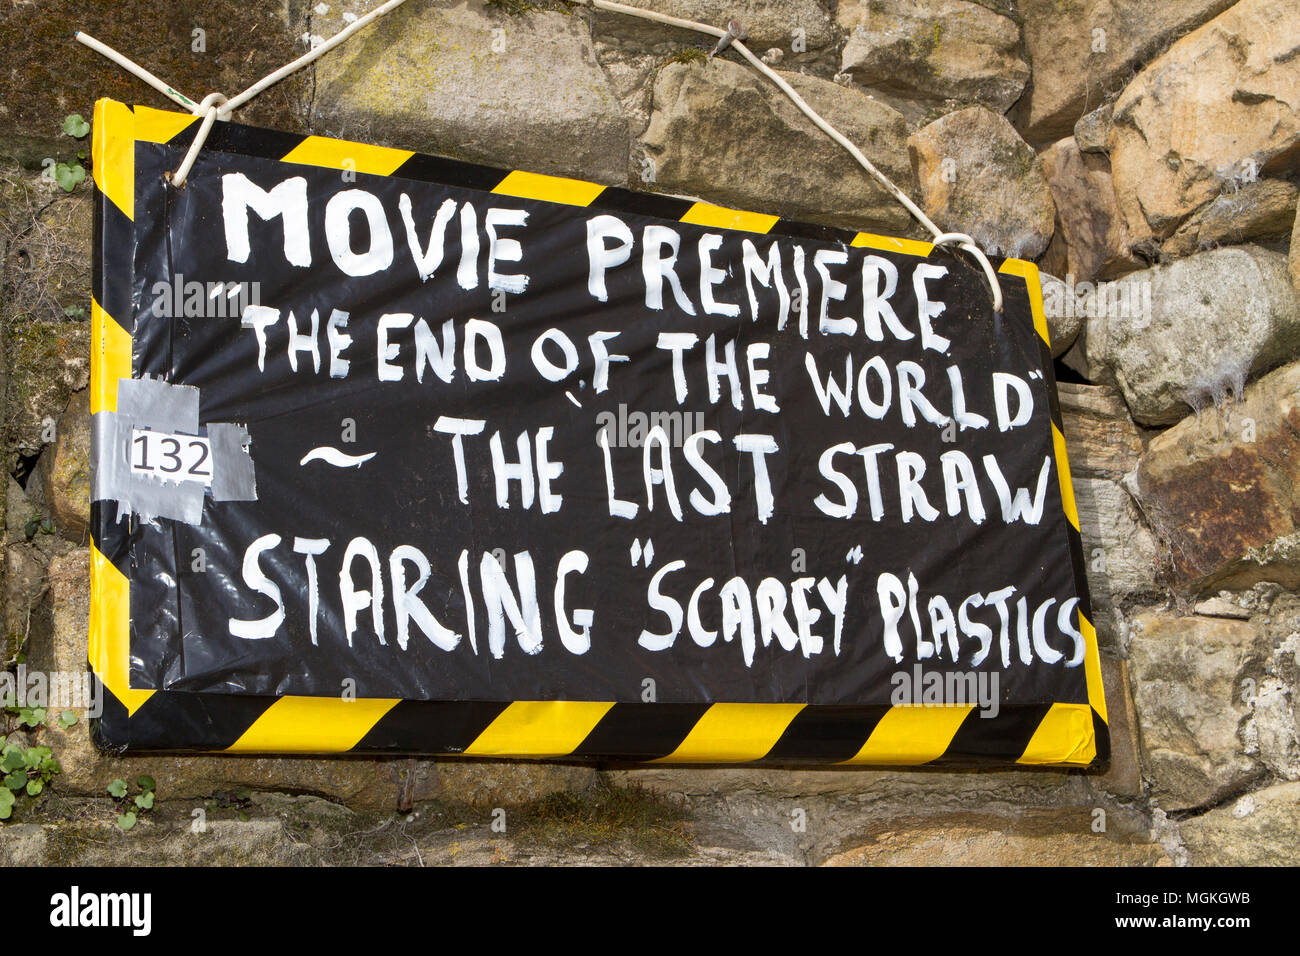 ocean plastic debris as part of the scarecrow festival in Wray, Lancaster, UK. - Stock Image